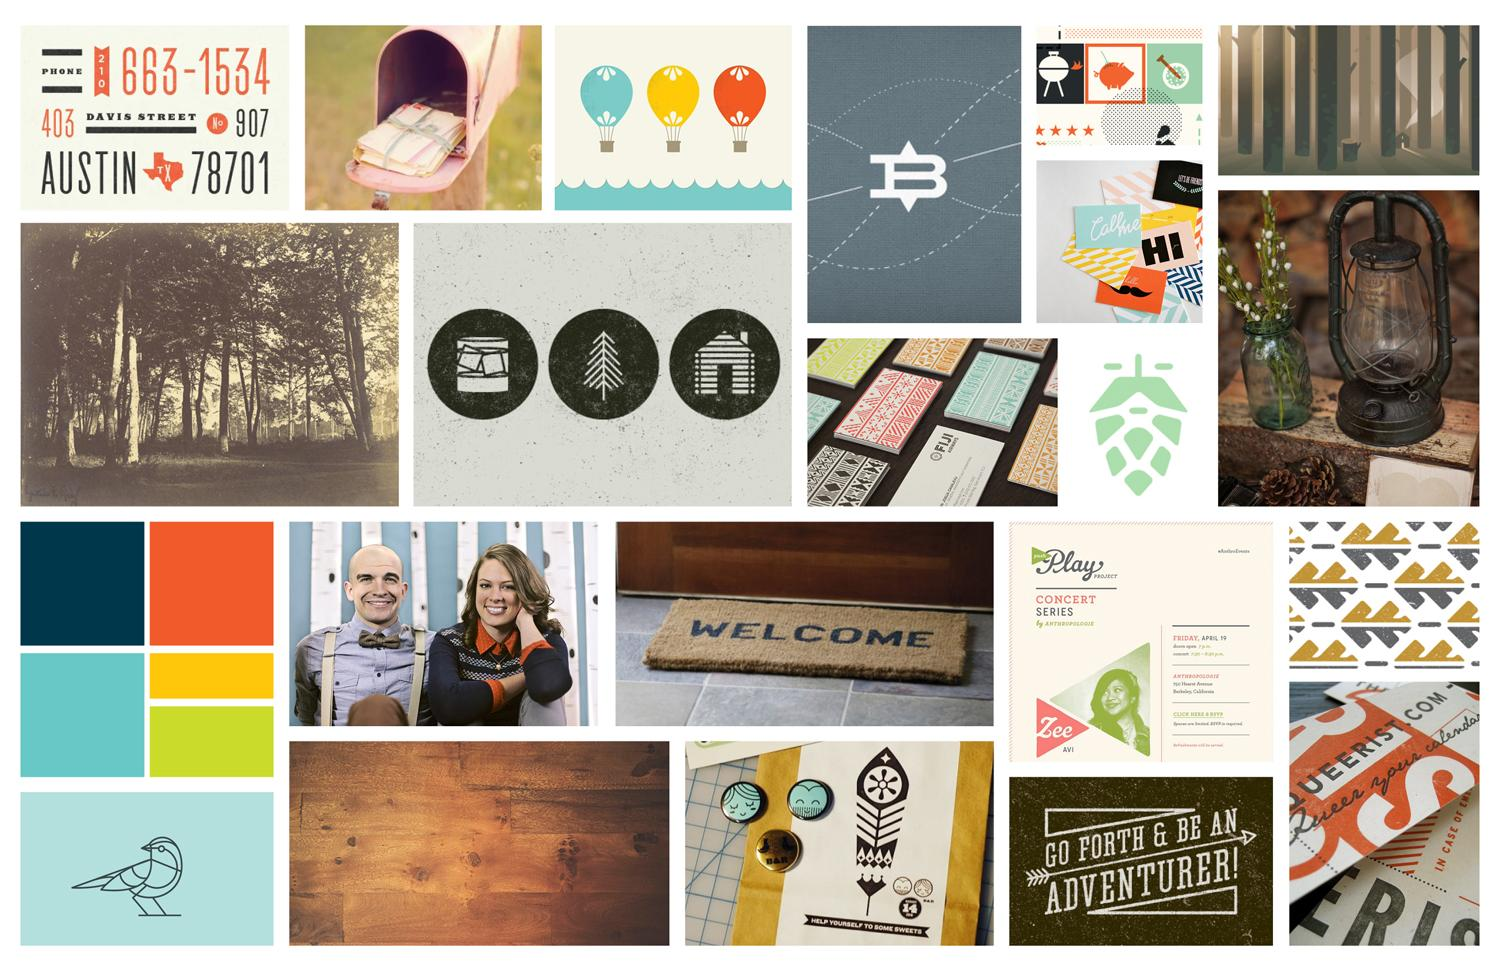 Foxmeadow Creative - Rebrand - image 12 - student project